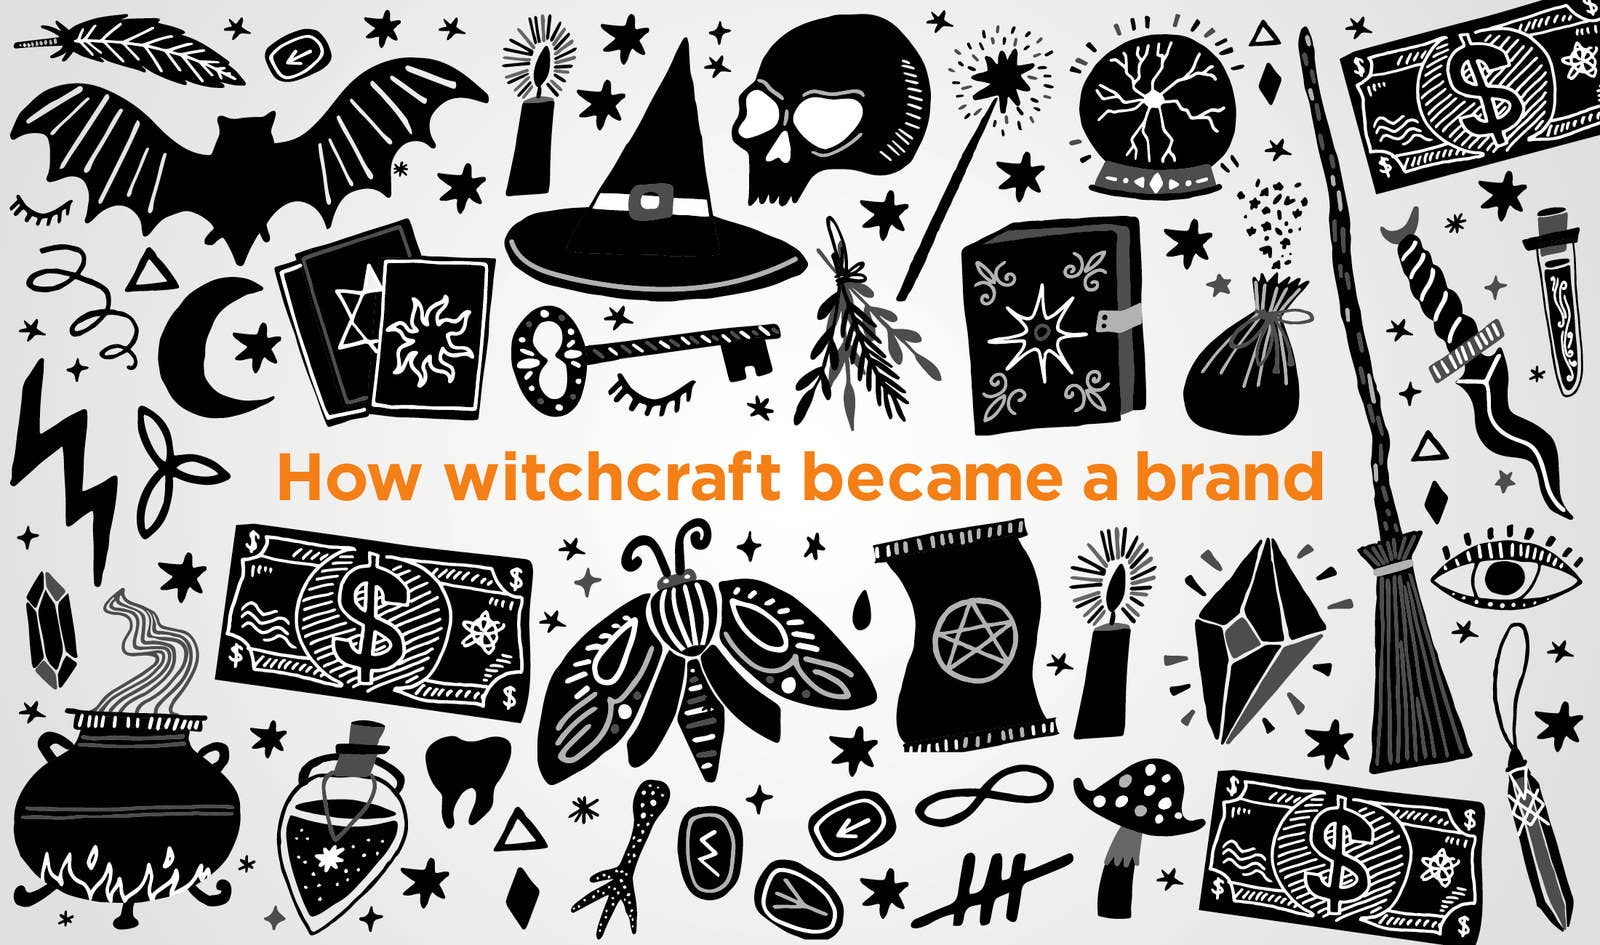 How witchcraft became a brand biocorpaavc Images